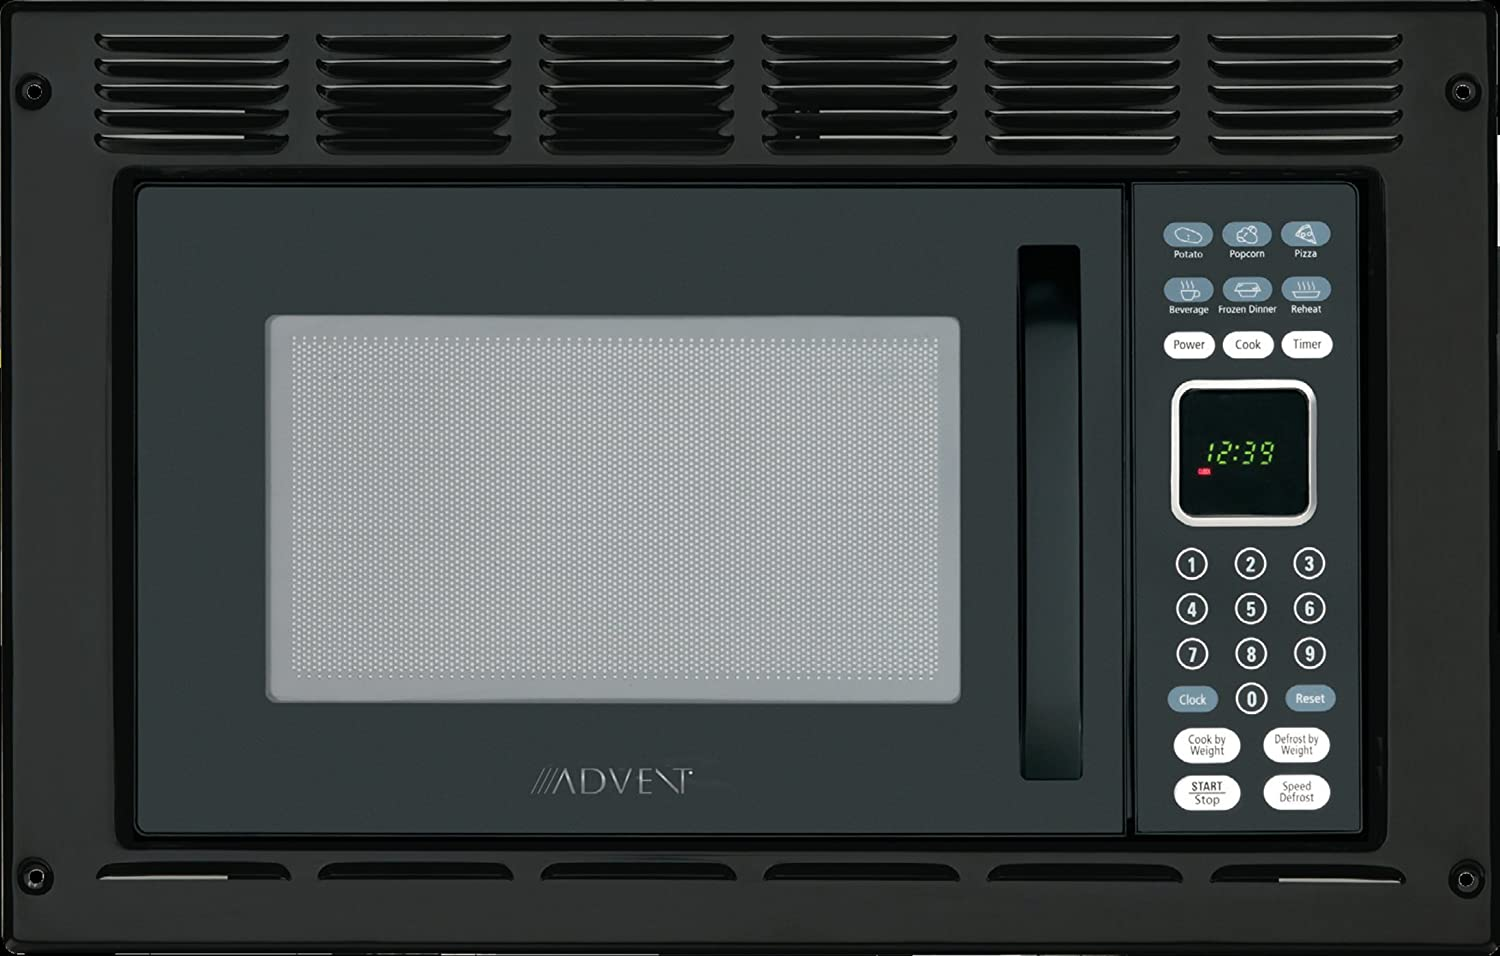 Advent MW912BWDK Black Built-in Microwave Oven with Wide Trim Kit PMWTRIM, Specially Built for RV Recreational Vehicle, Trailer, Camper, Motor Home (Renewed)